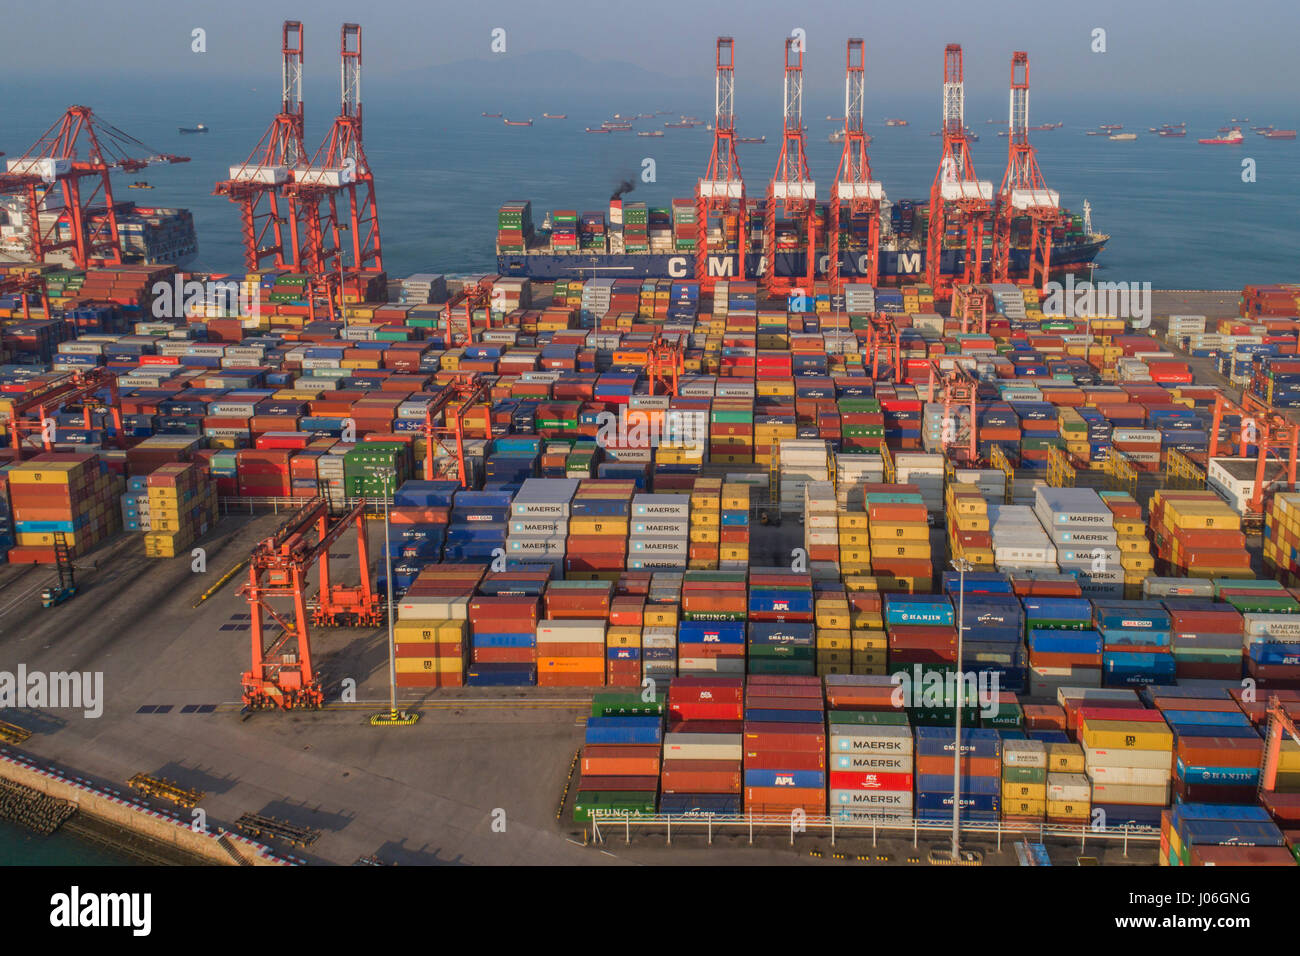 A section of Shenzhen port viewed from the air near Shekou, Nanshan. Shenzhen is the second busiest port in China - Stock Image